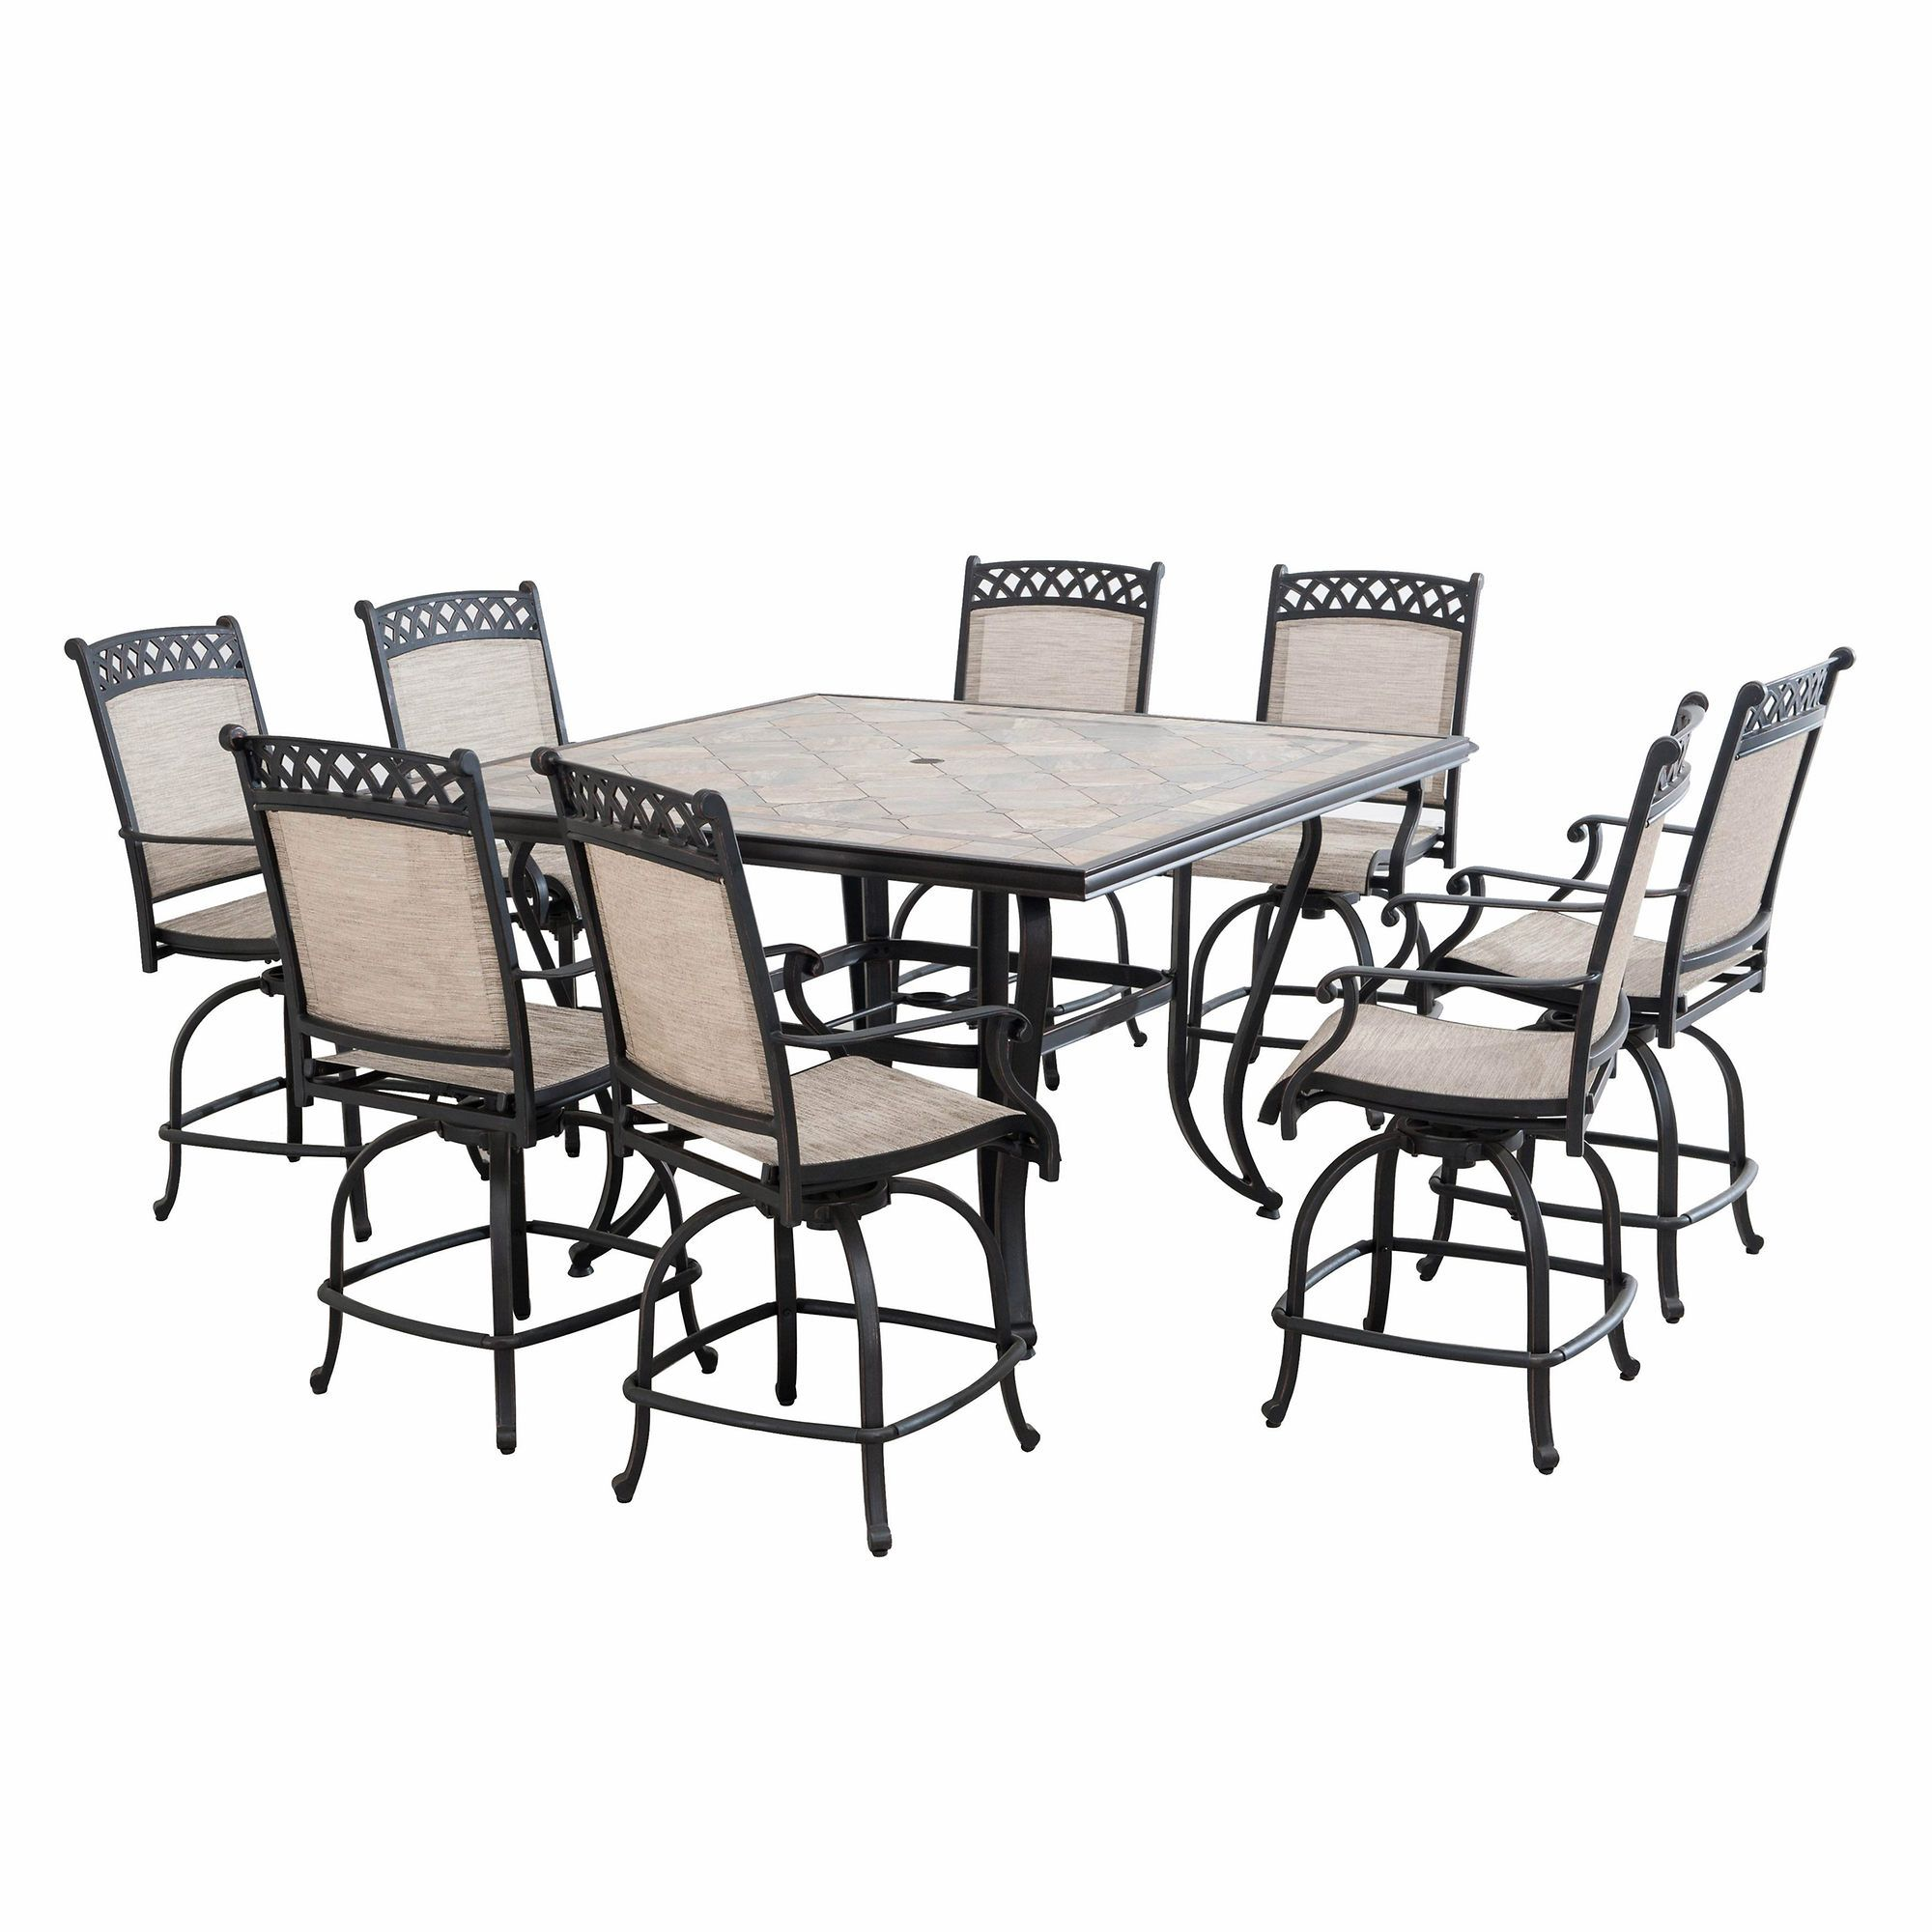 Berkley Jensen Milan 9 Pc. High Dining Set   BJu0027s Wholesale Club